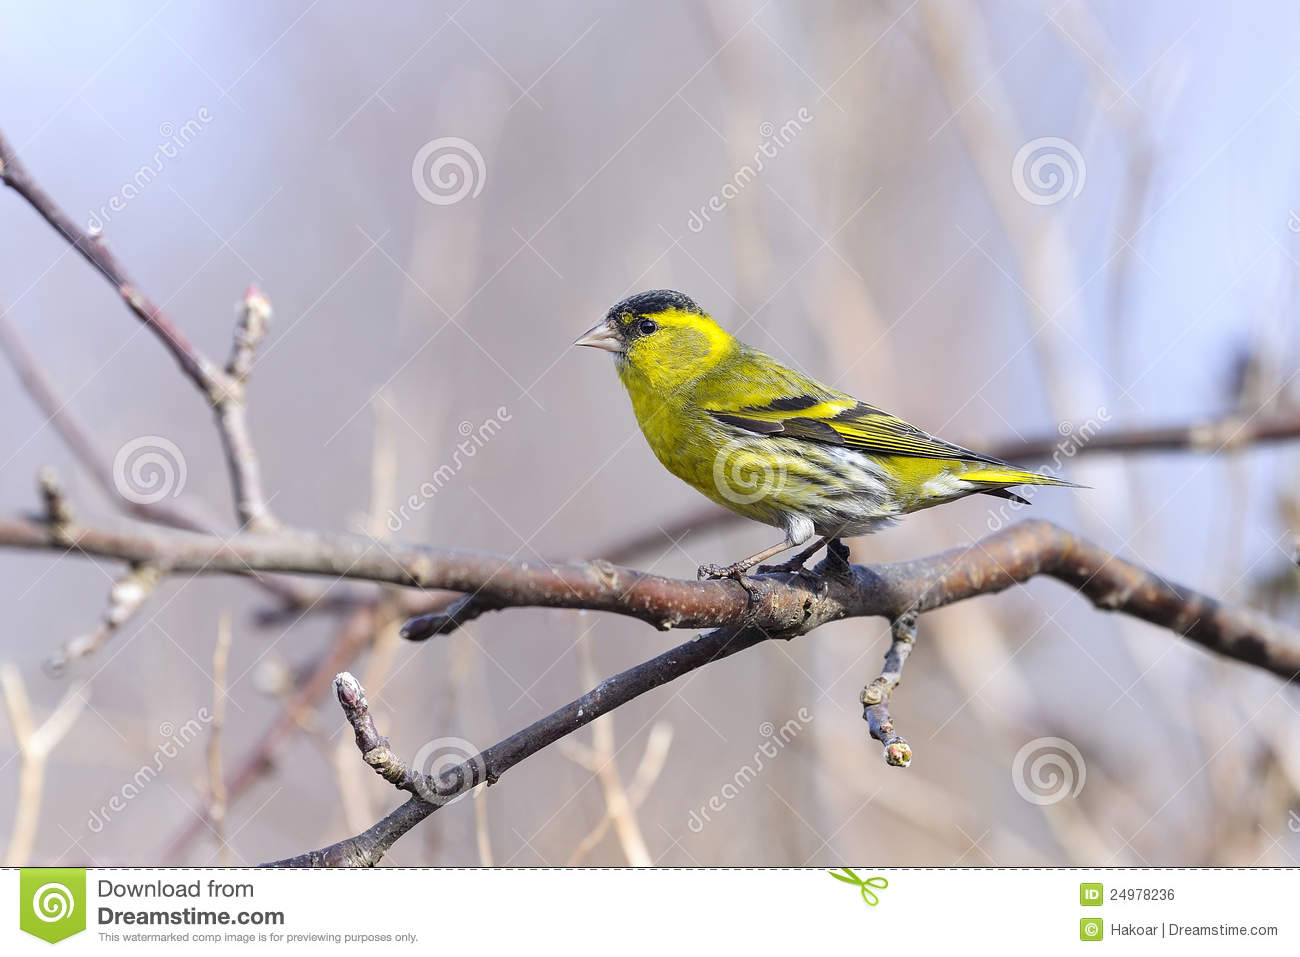 Eurasian Siskin clipart #10, Download drawings